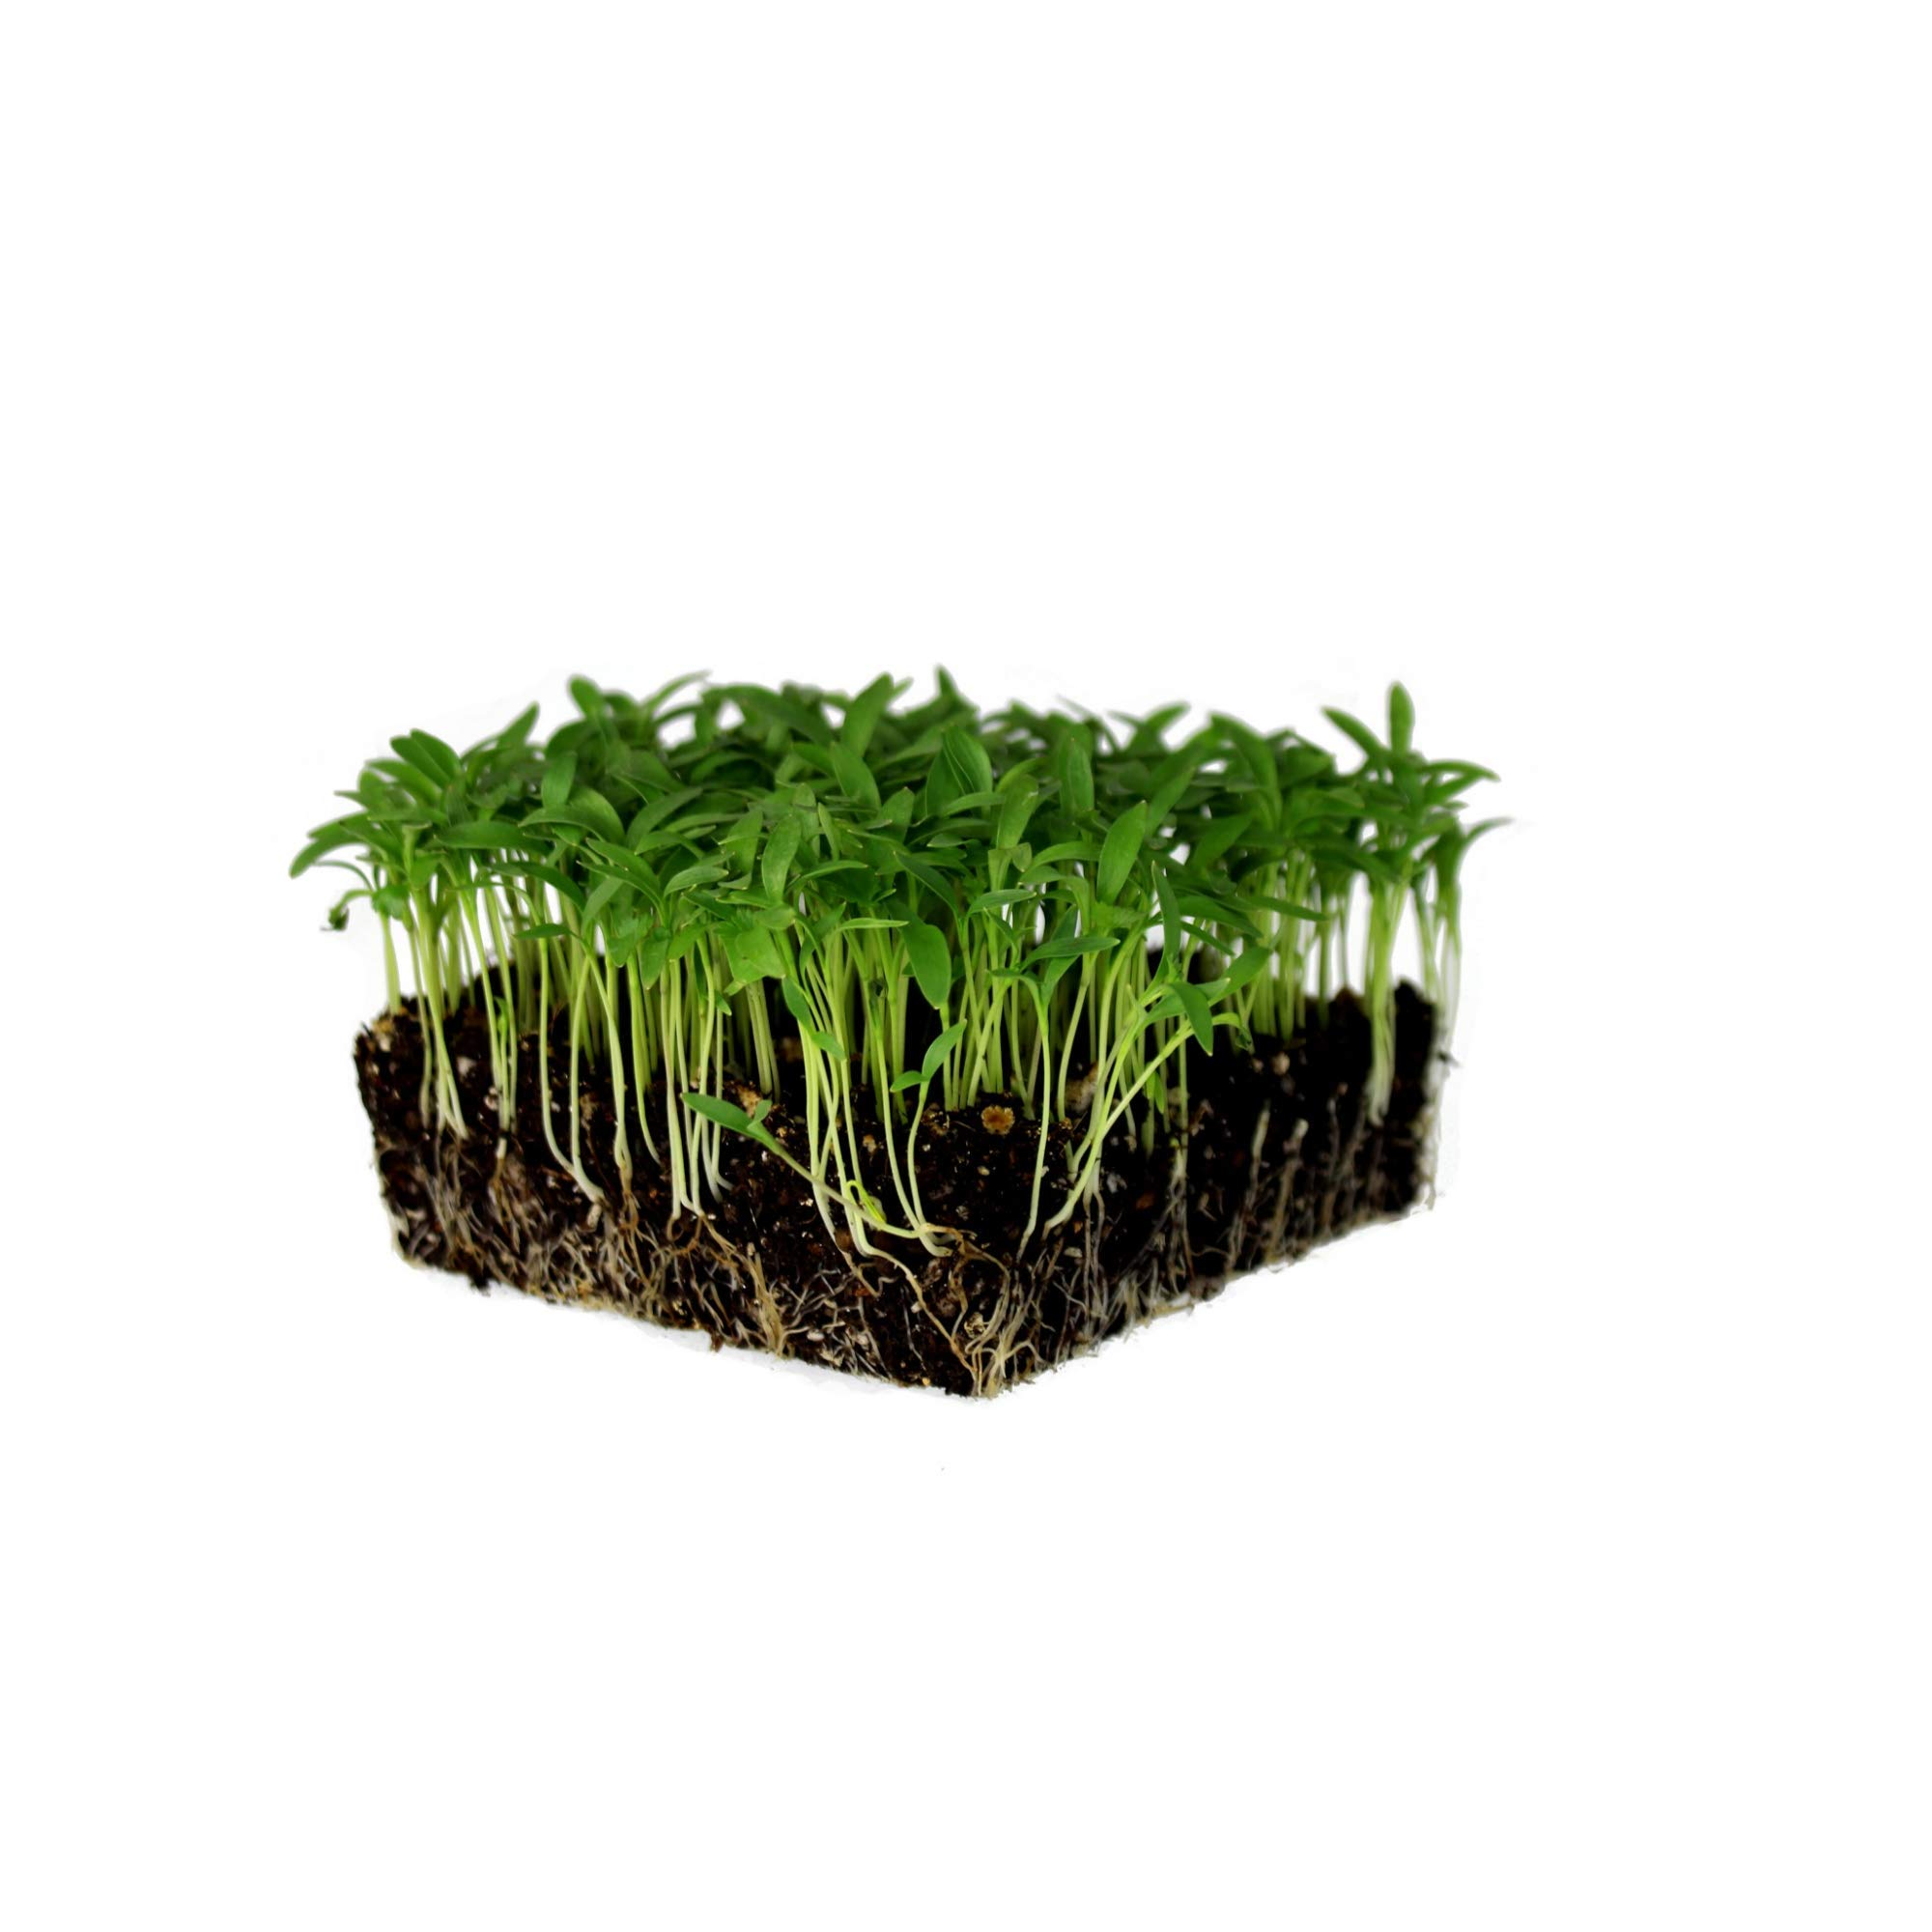 Slow Bolt Cilantro Herb Garden Seeds - 5 Lb Bulk - Non-GMO, Heirloom, Organic - Herbal Gardening & Microgreens Seeds (Coriander)